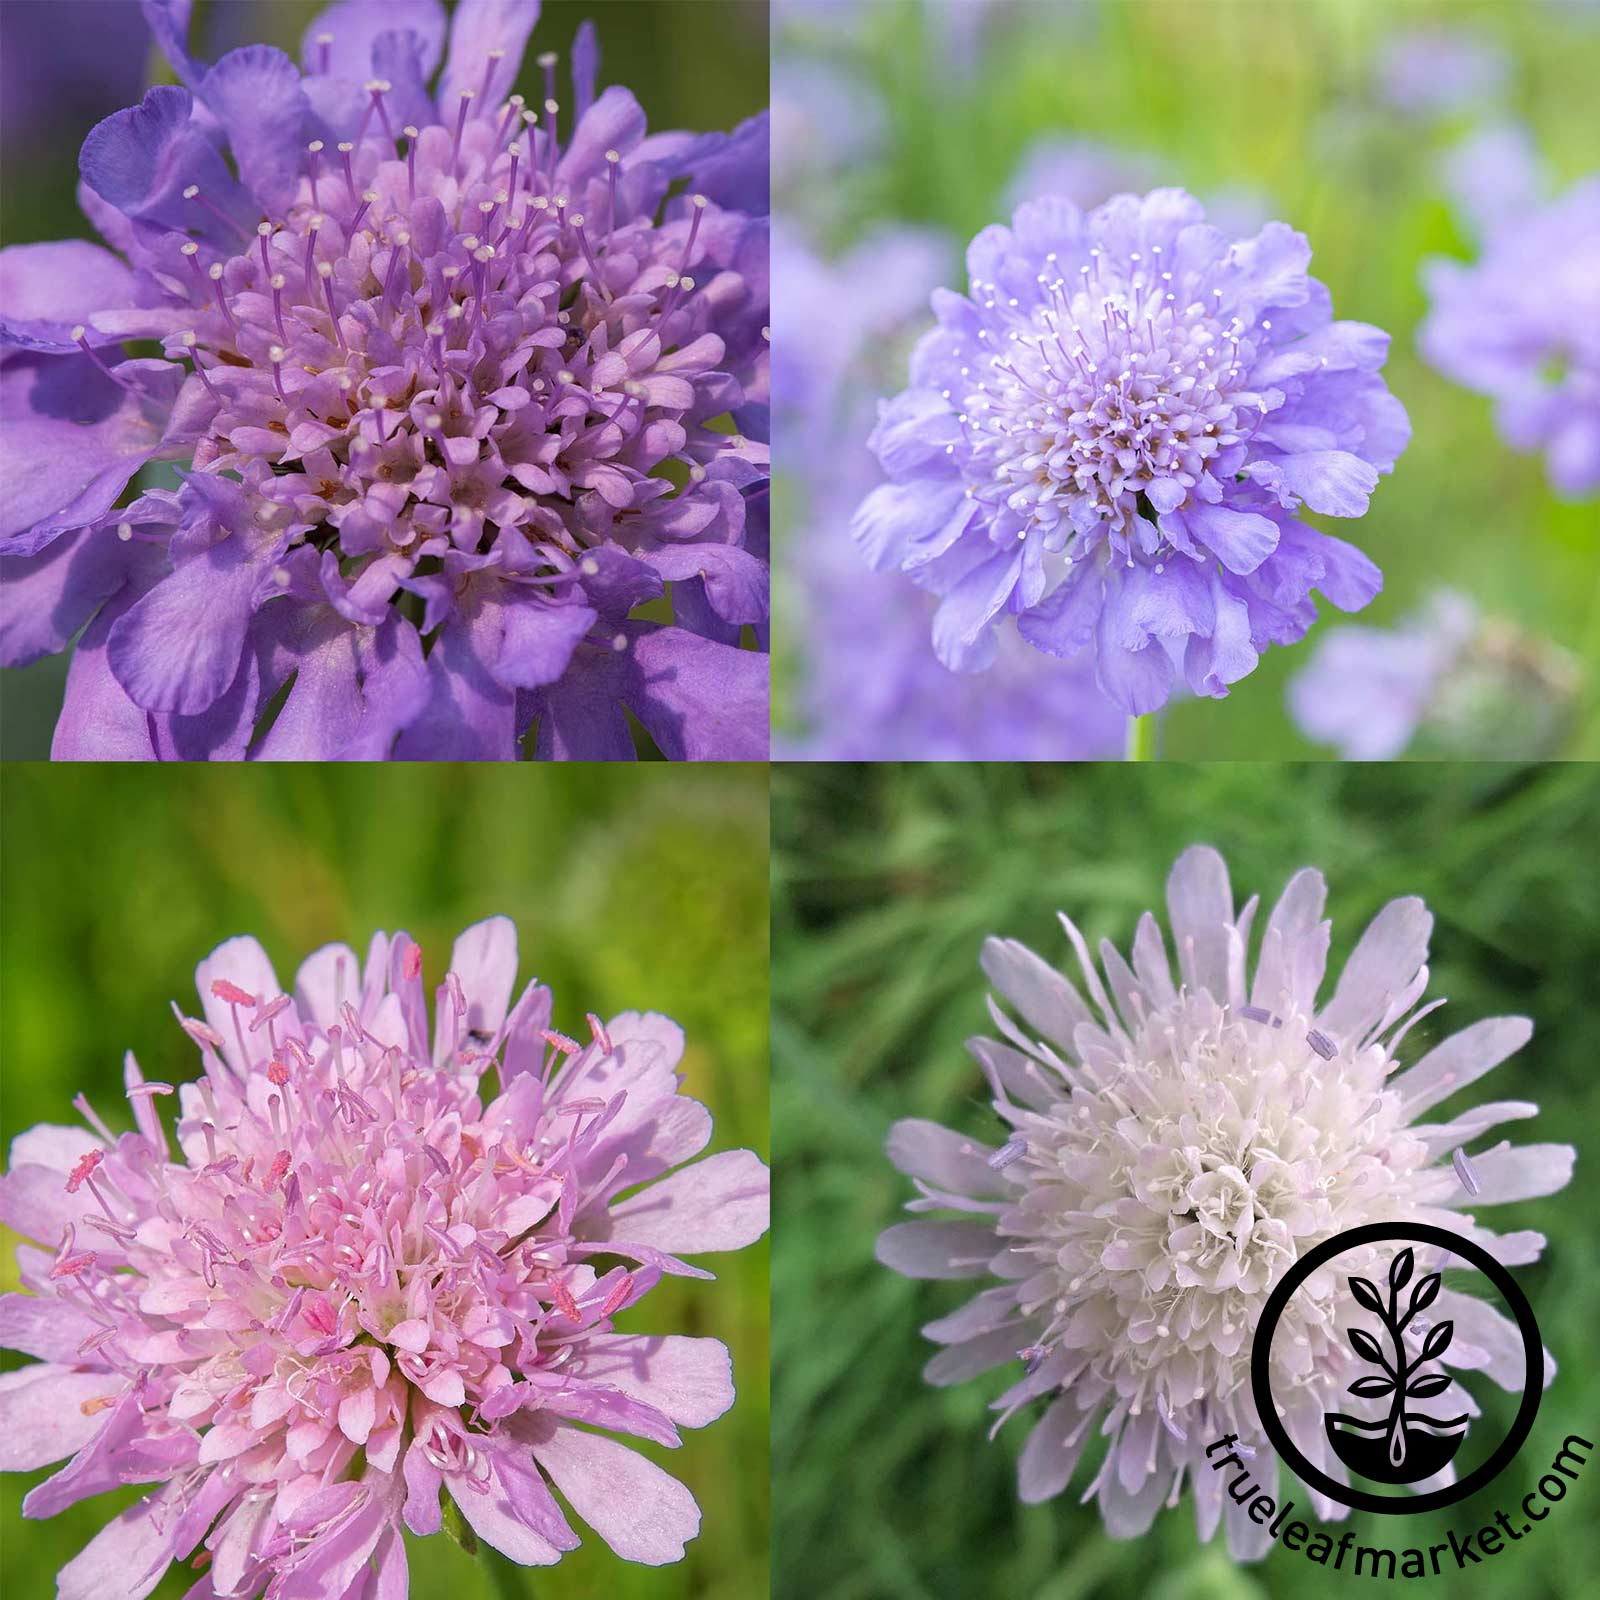 Scabiosa - HiGro Mix Scabiosa seeds, flower seeds, HiGro Mix